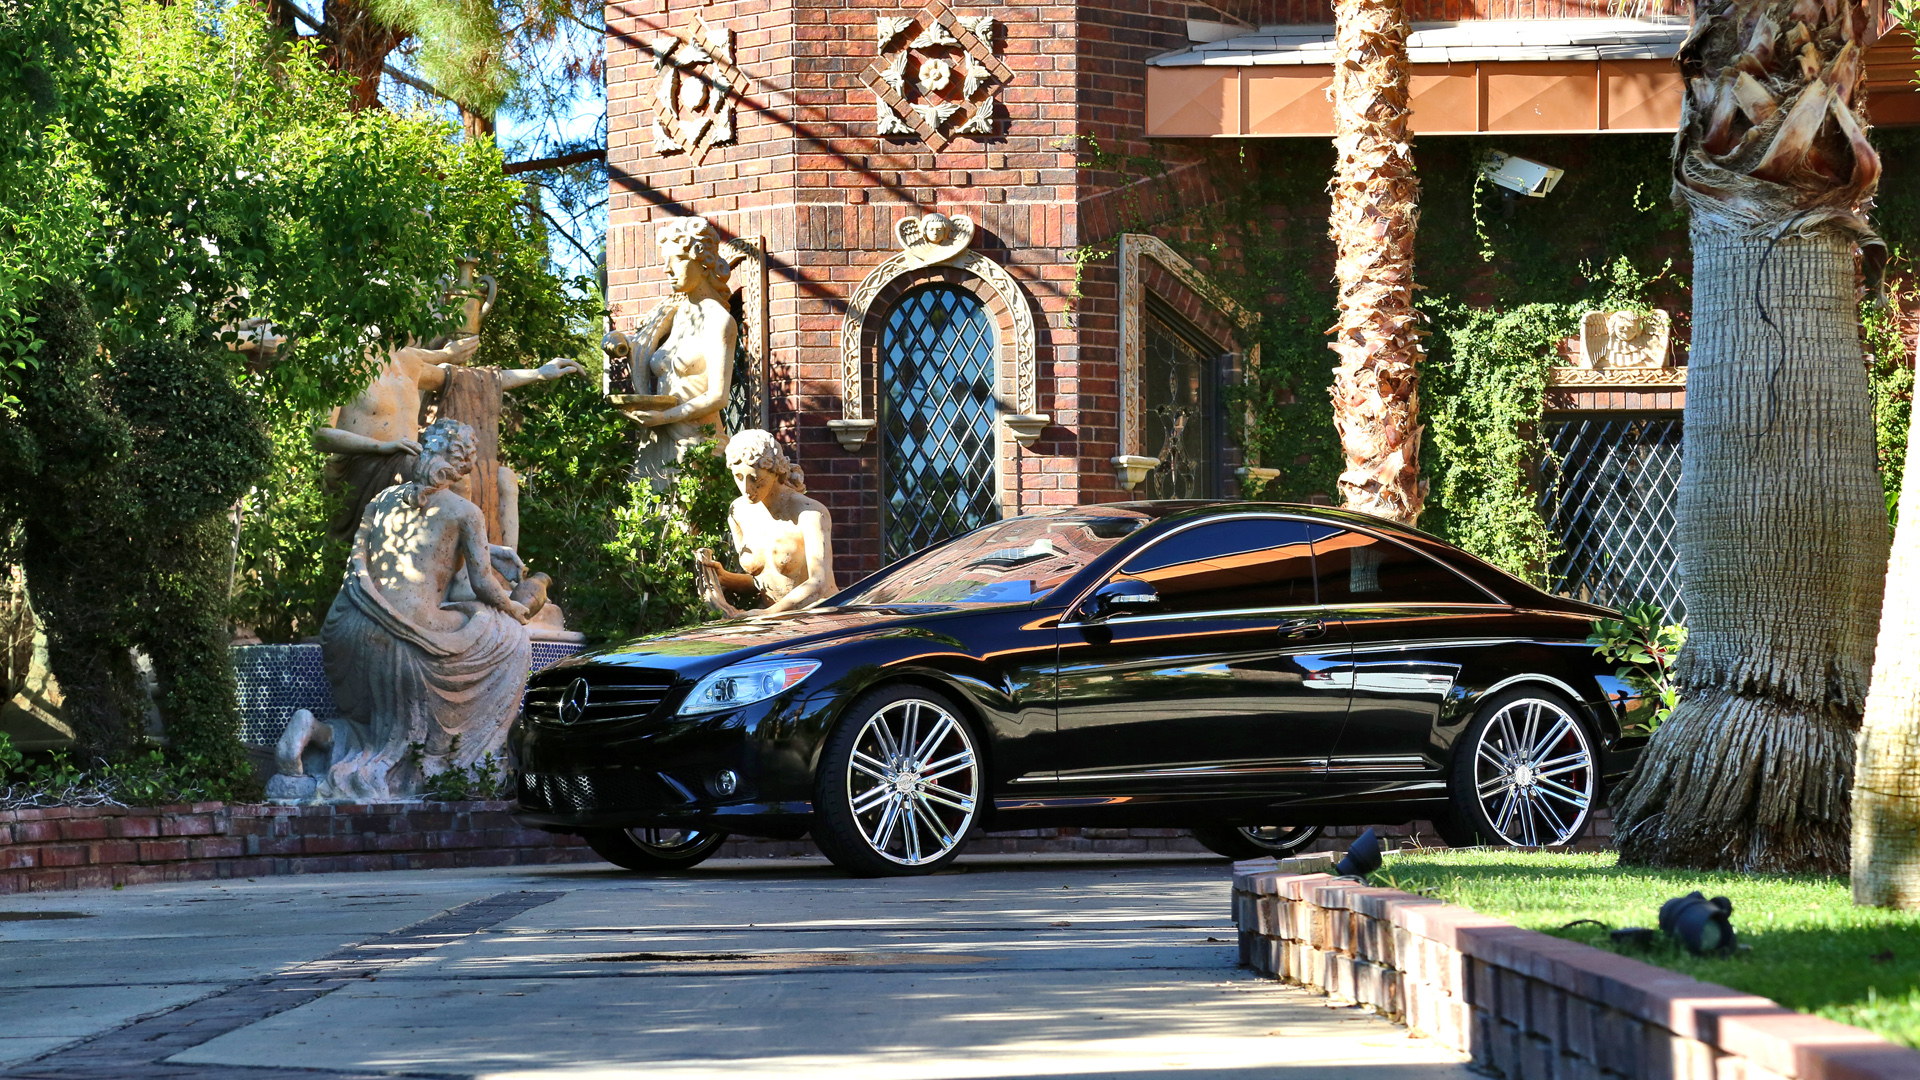 Watch furthermore Car Wheels besides Jaguar F Type Coupe Tuned By Arden further Mercedes Benz Cl500 additionally 19498686. on 2010 mercedes s550 coupe